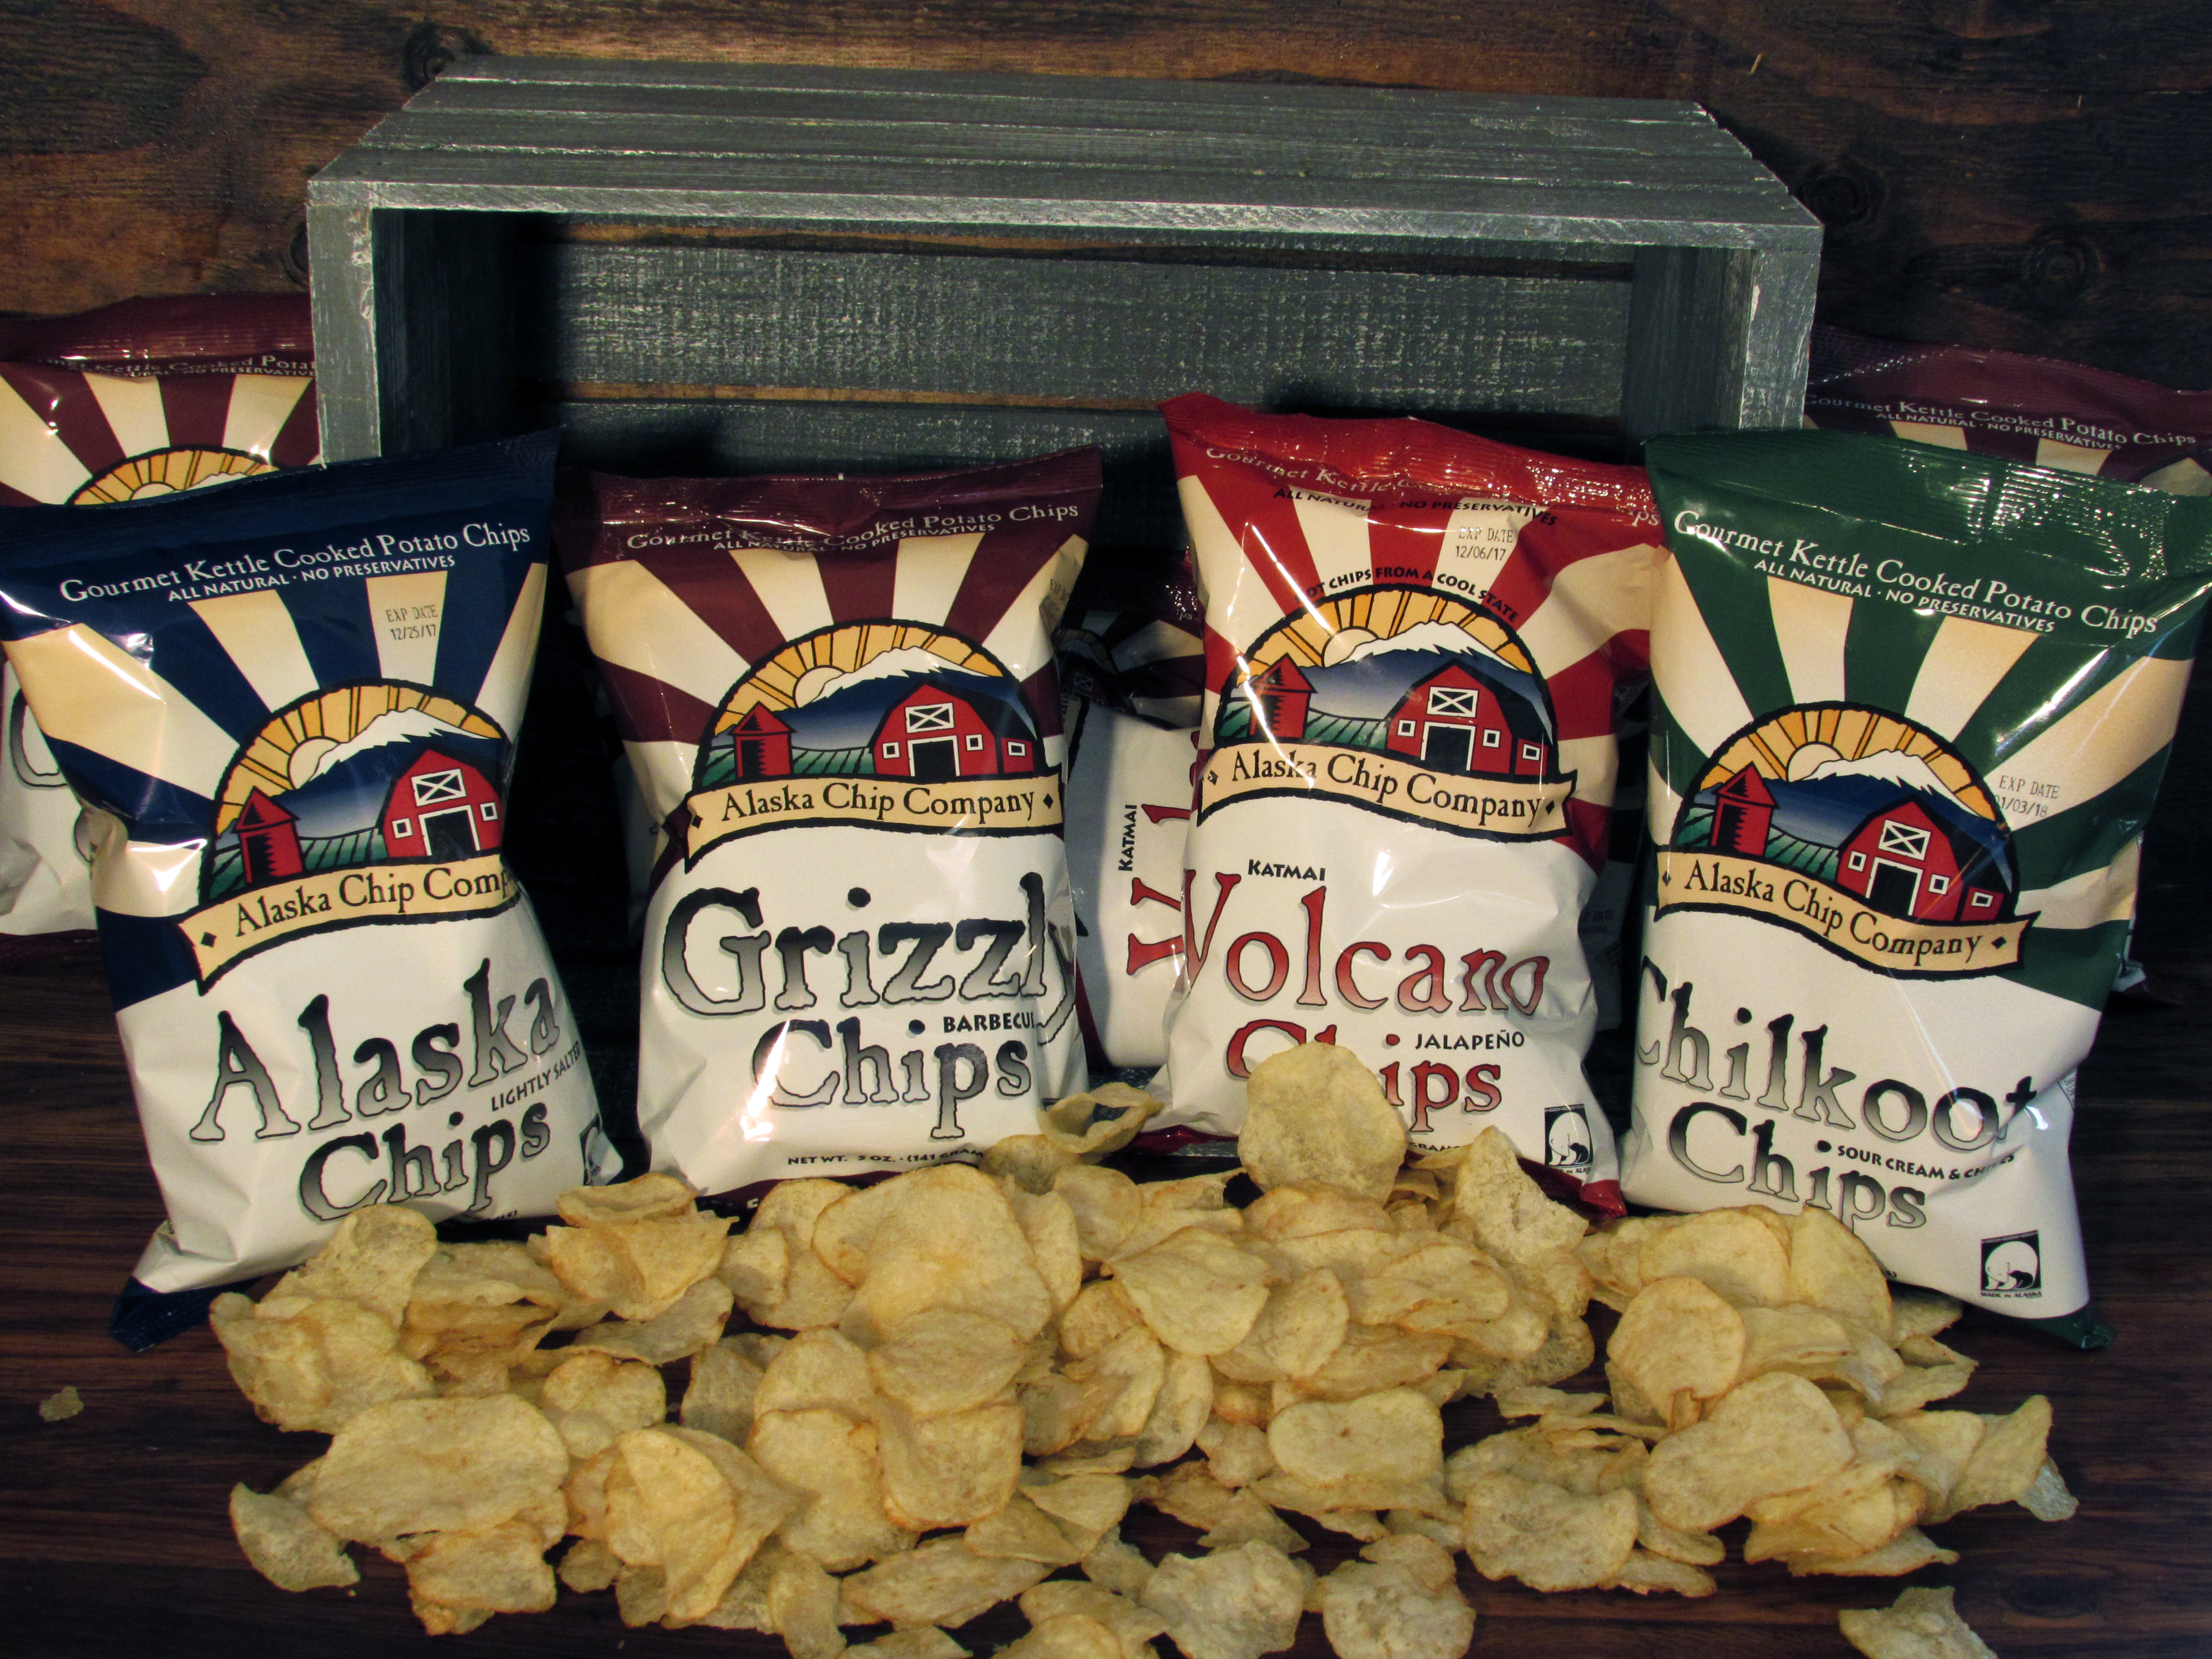 All flavors of Alaska potato chips